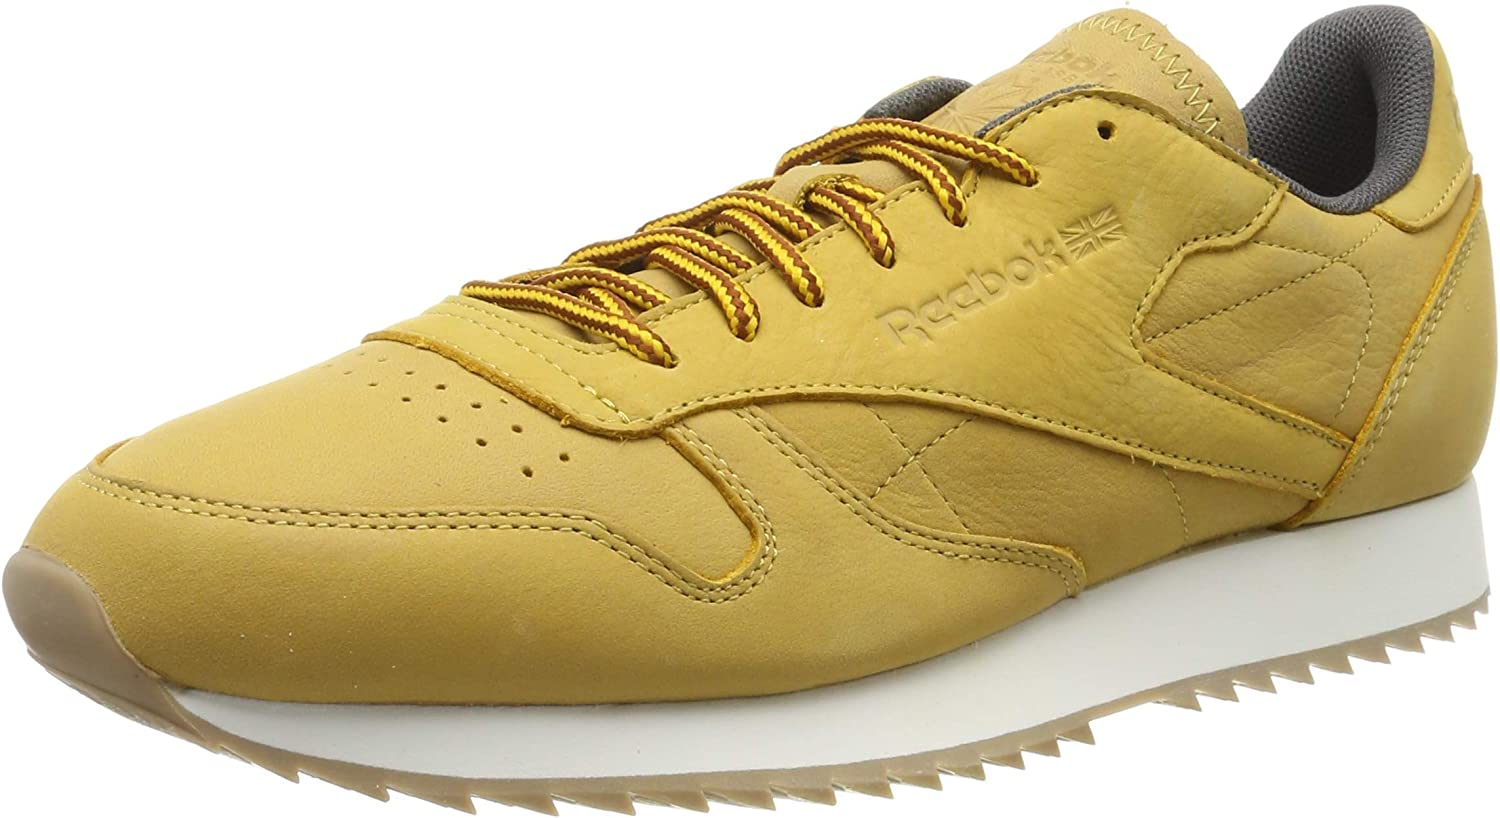 Reebok Men's Cl Leather Ripple Wp Fitness shoes